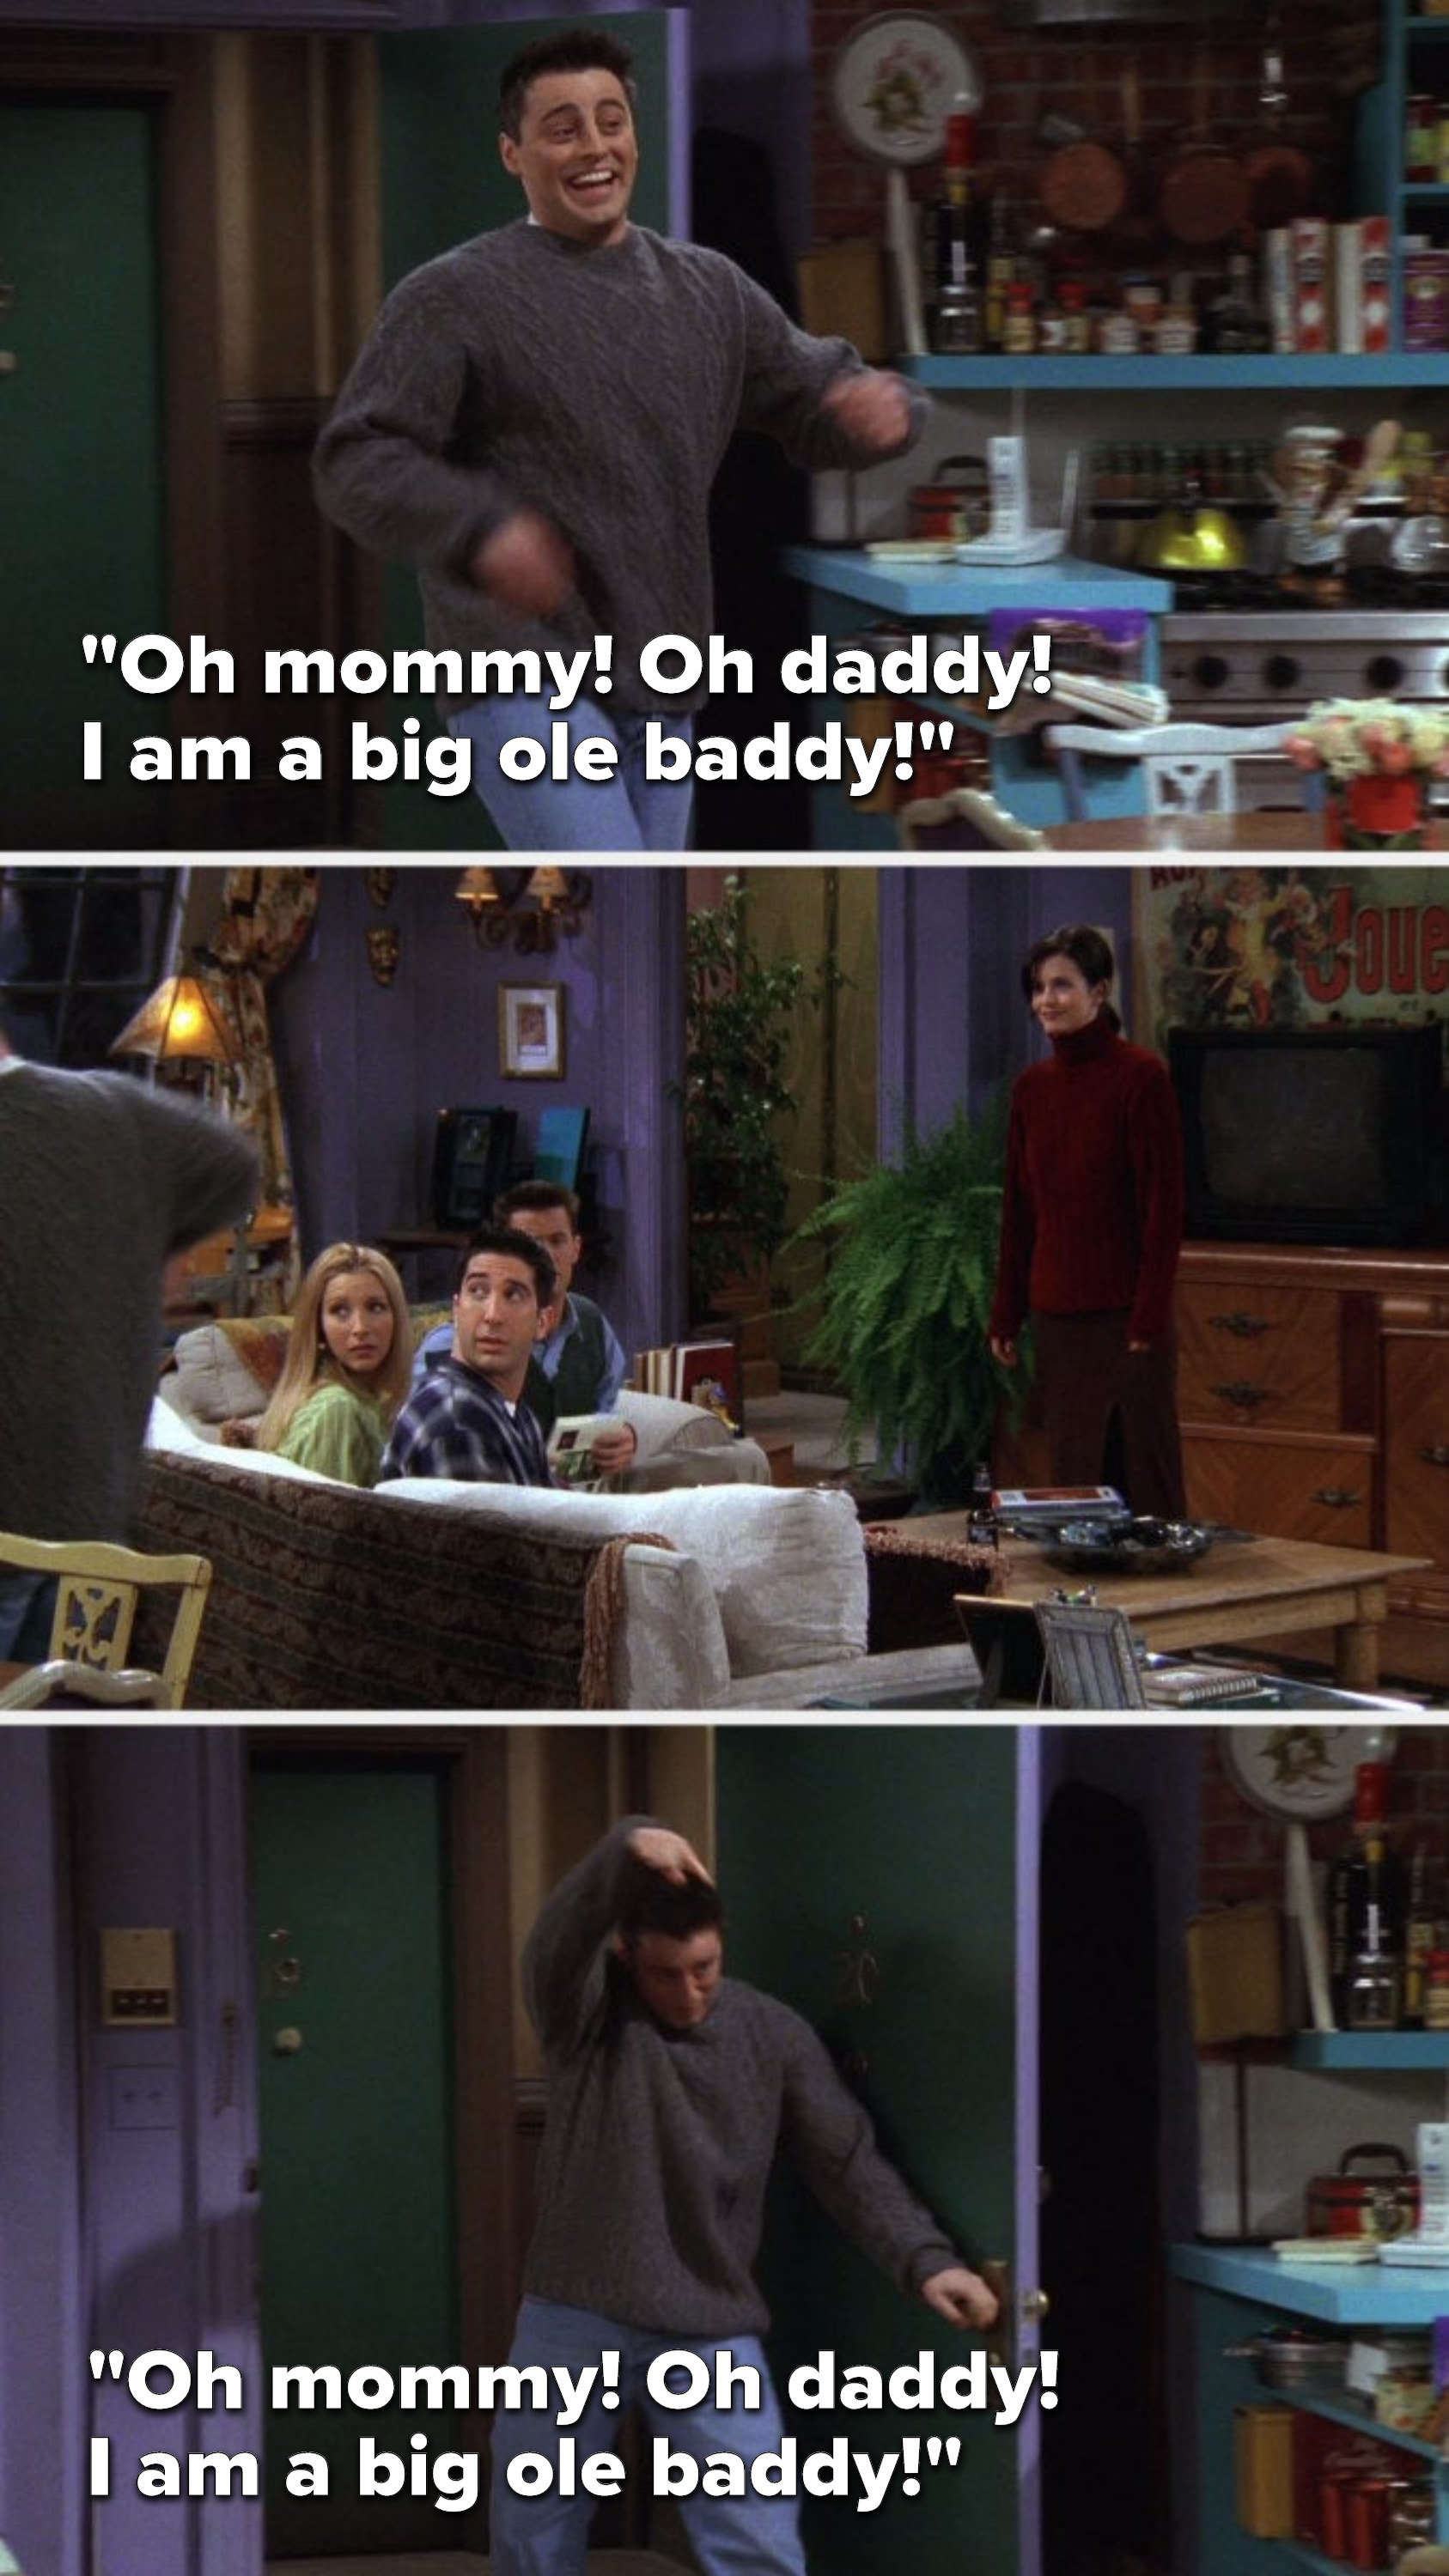 """Joey dances and says, """"Oh mommy, oh daddy, I am a big ole baddy, oh mommy, oh daddy, I am a big ole baddy"""""""